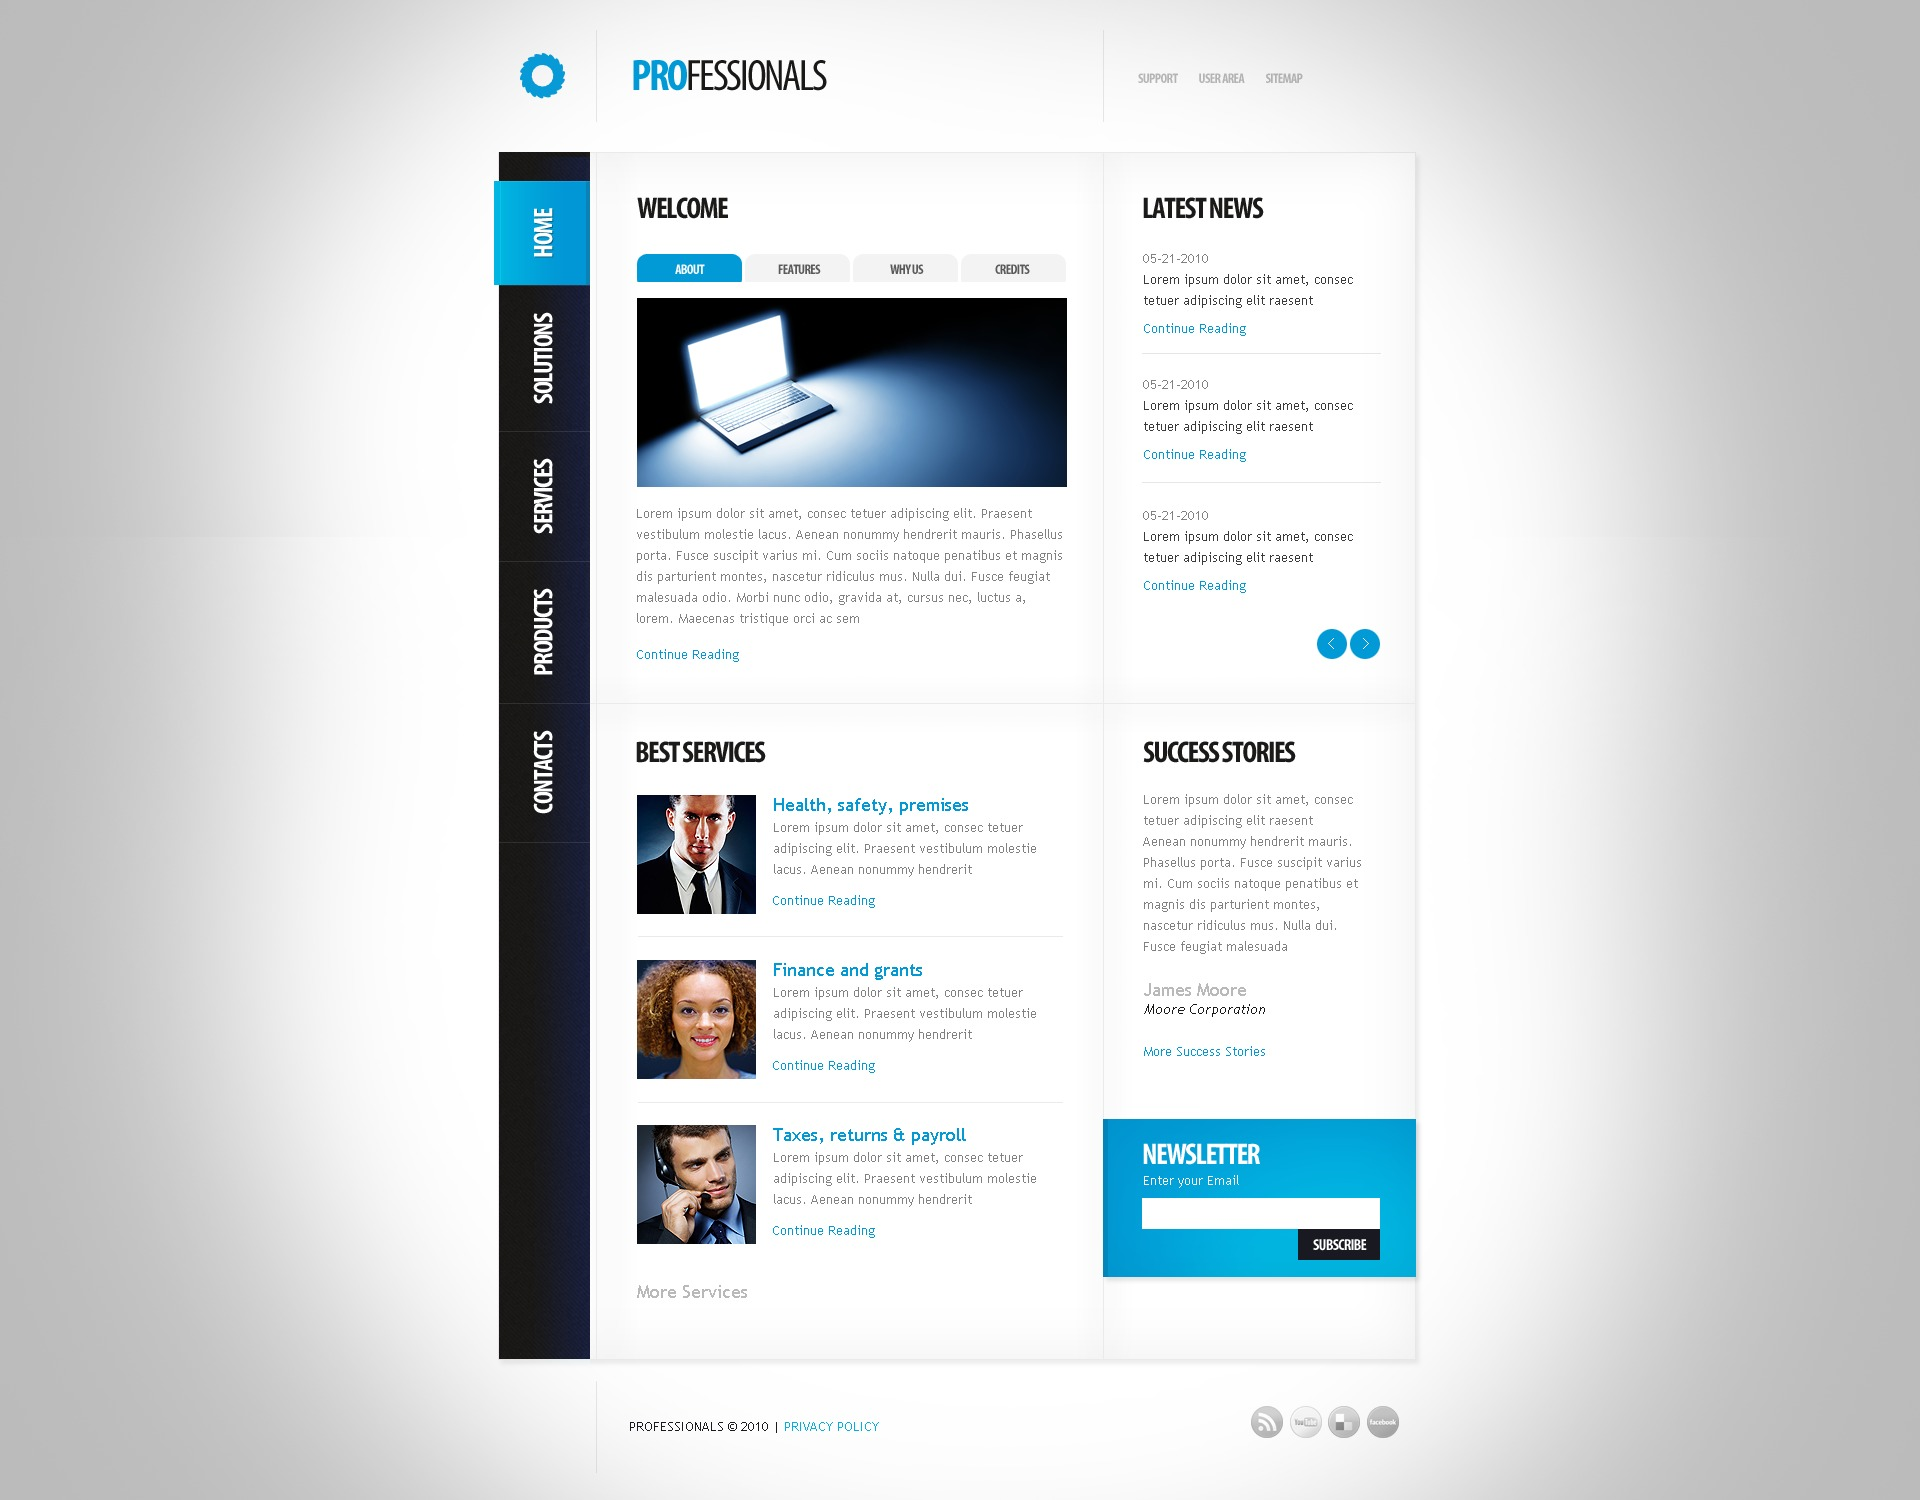 The Professionals Business Company PSD Design 54127, one of the best PSD templates of its kind (business, wide, jquery), also known as professionals business company PSD template, corporate solutions PSD template, innovations PSD template, contacts PSD template, service PSD template, support PSD template, information dealer PSD template, stocks PSD template, team PSD template, success PSD template, money PSD template, marketing PSD template, director PSD template, manager PSD template, analytics PSD template, planning PSD template, limited PSD template, office PSD template, sales and related with professionals business company, corporate solutions, innovations, contacts, service, support, information dealer, stocks, team, success, money, marketing, director, manager, analytics, planning, limited, office, sales, etc.